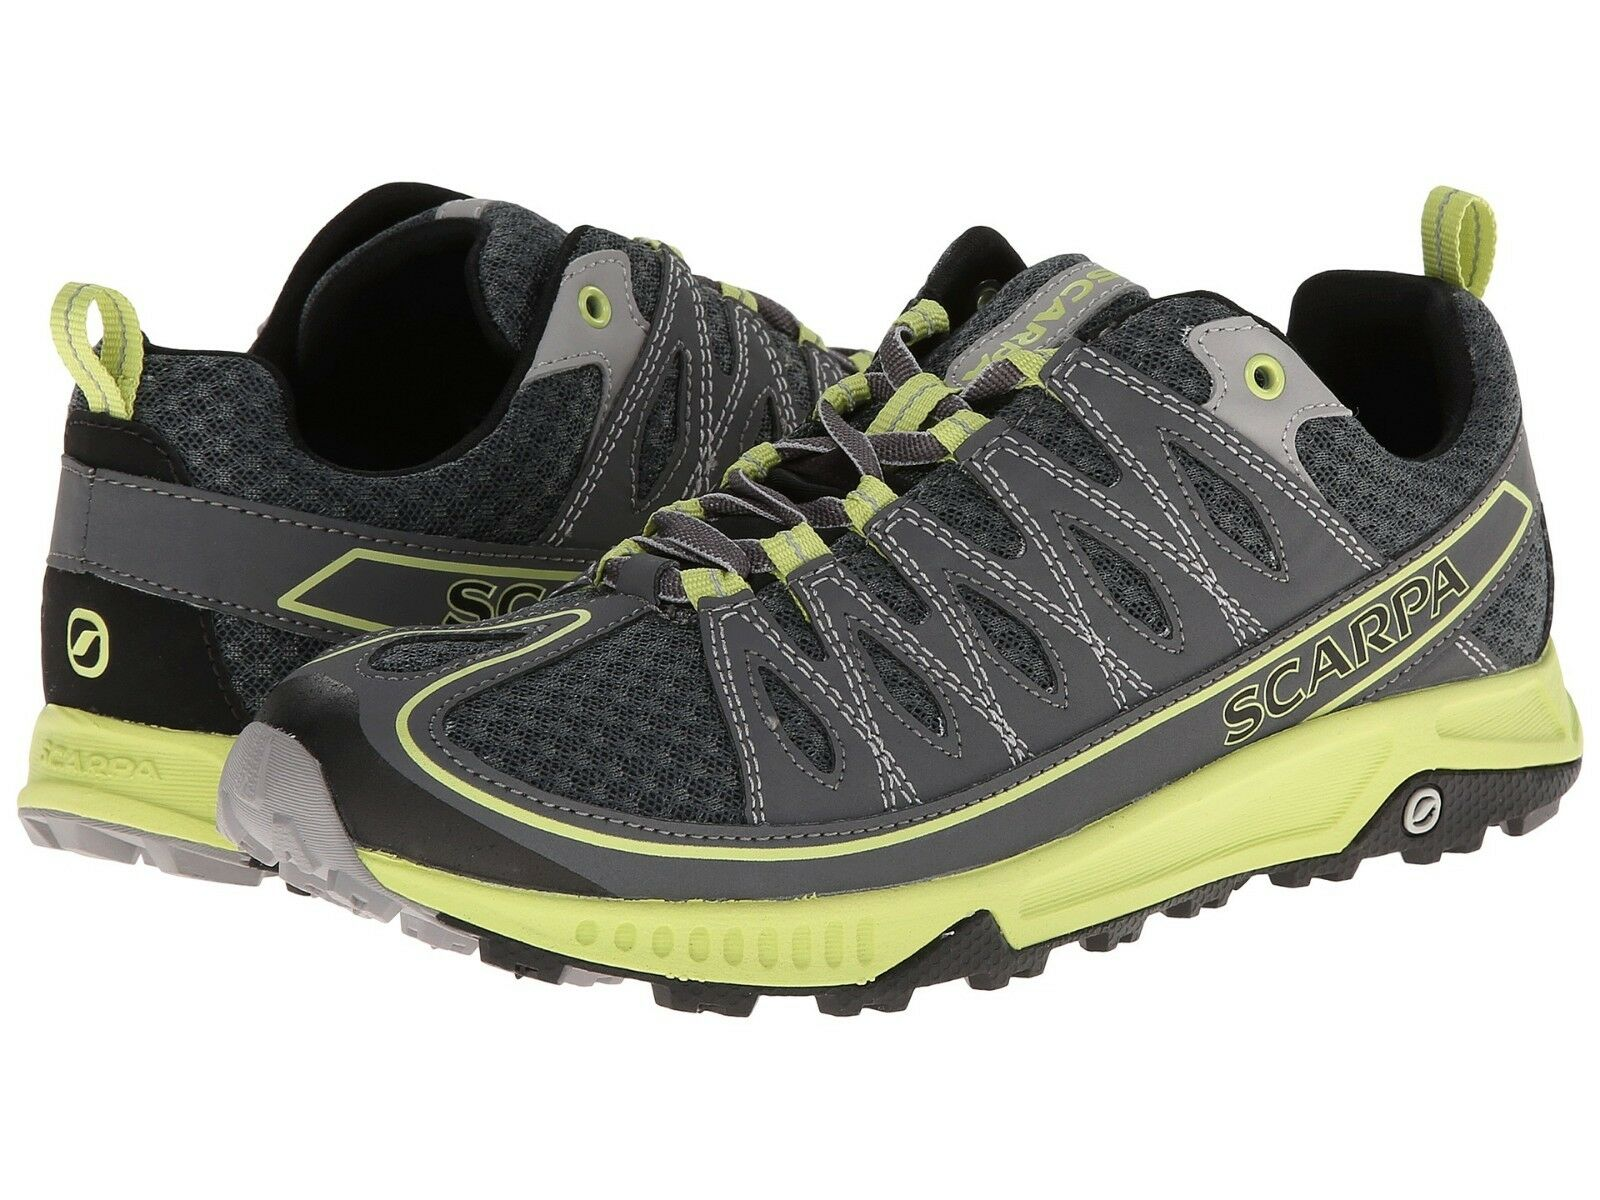 60% OFF  NEW  Damen  SCARPA ION SHARK/LIME. LIGHTWEIGHT RUNNING Schuhe , US 7, SHARK/LIME. ION b07d50